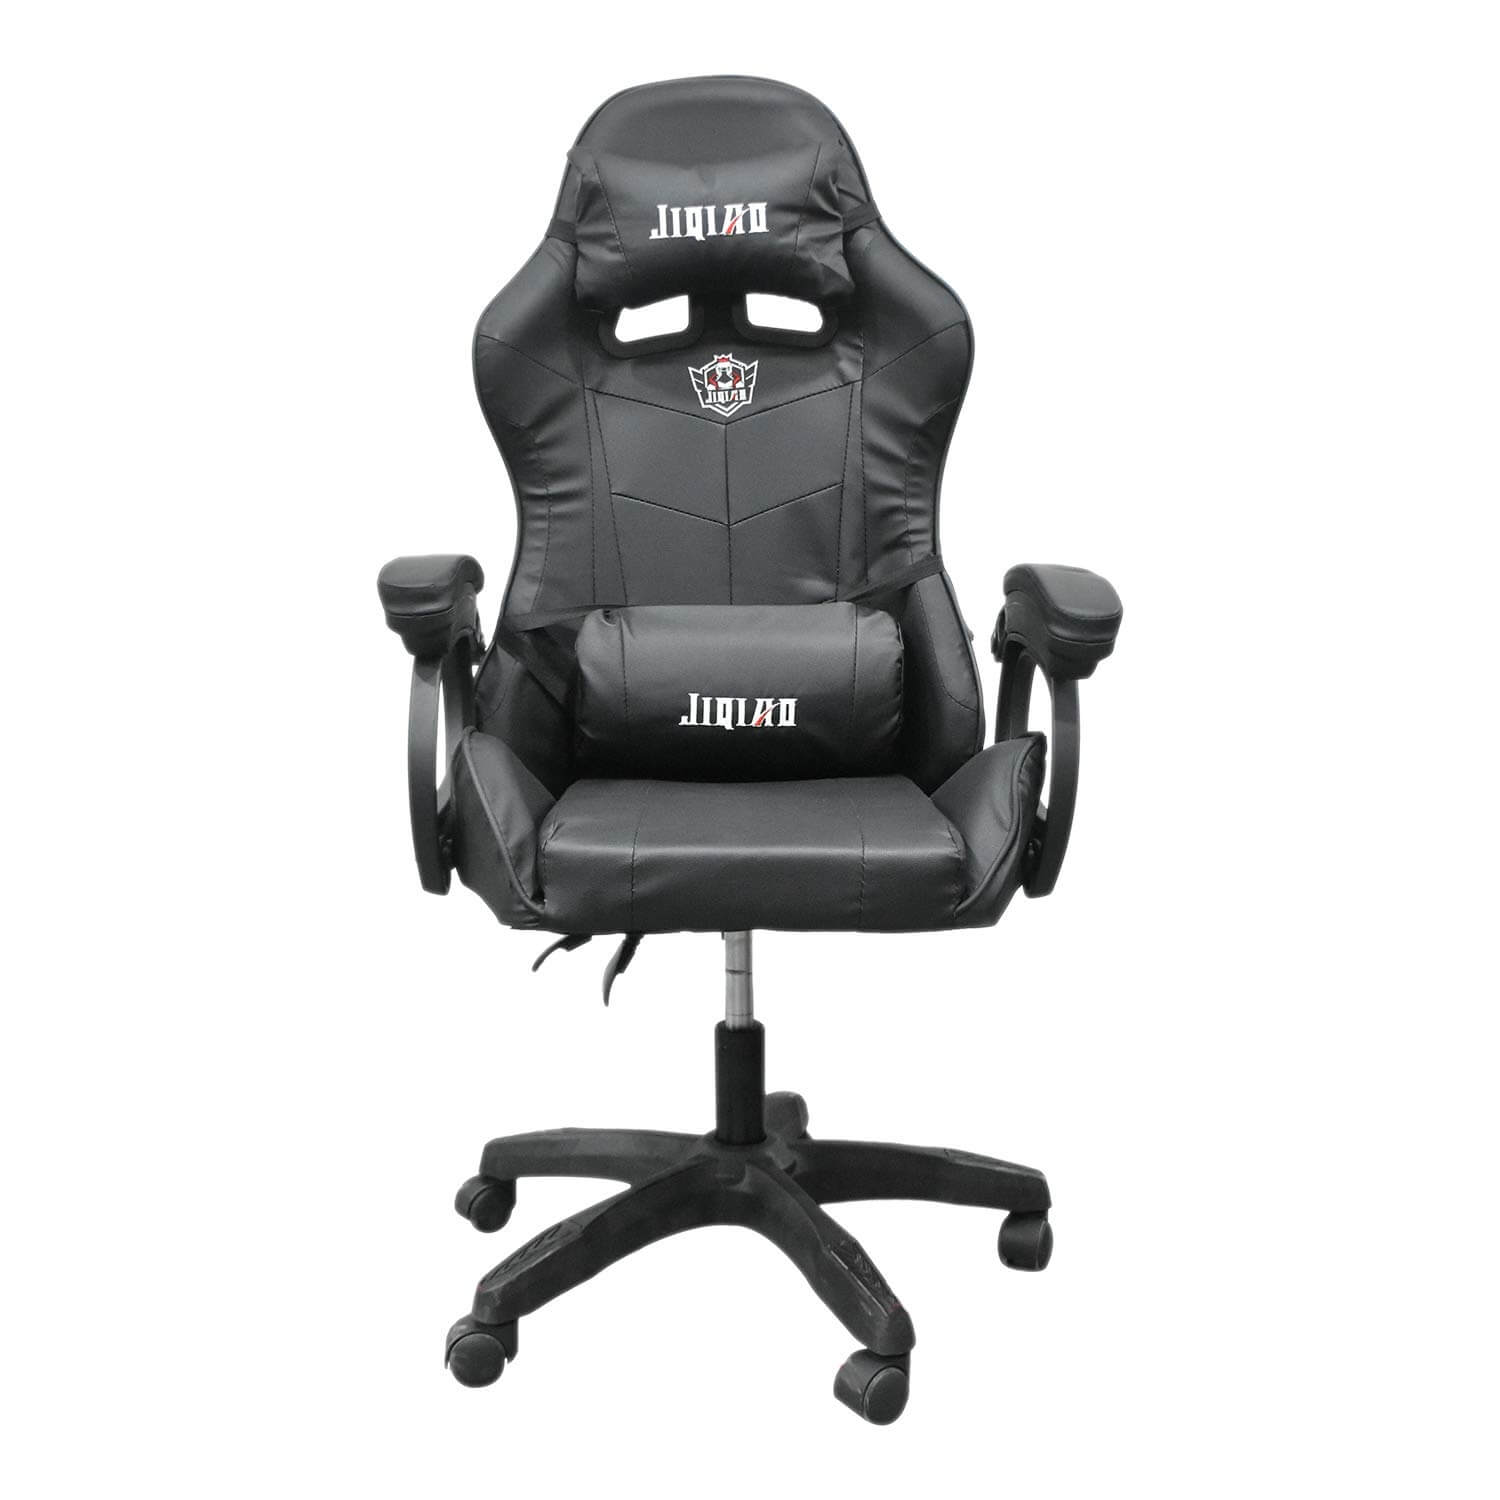 Snaptron Gaming Chair with high Back Support Comfortable